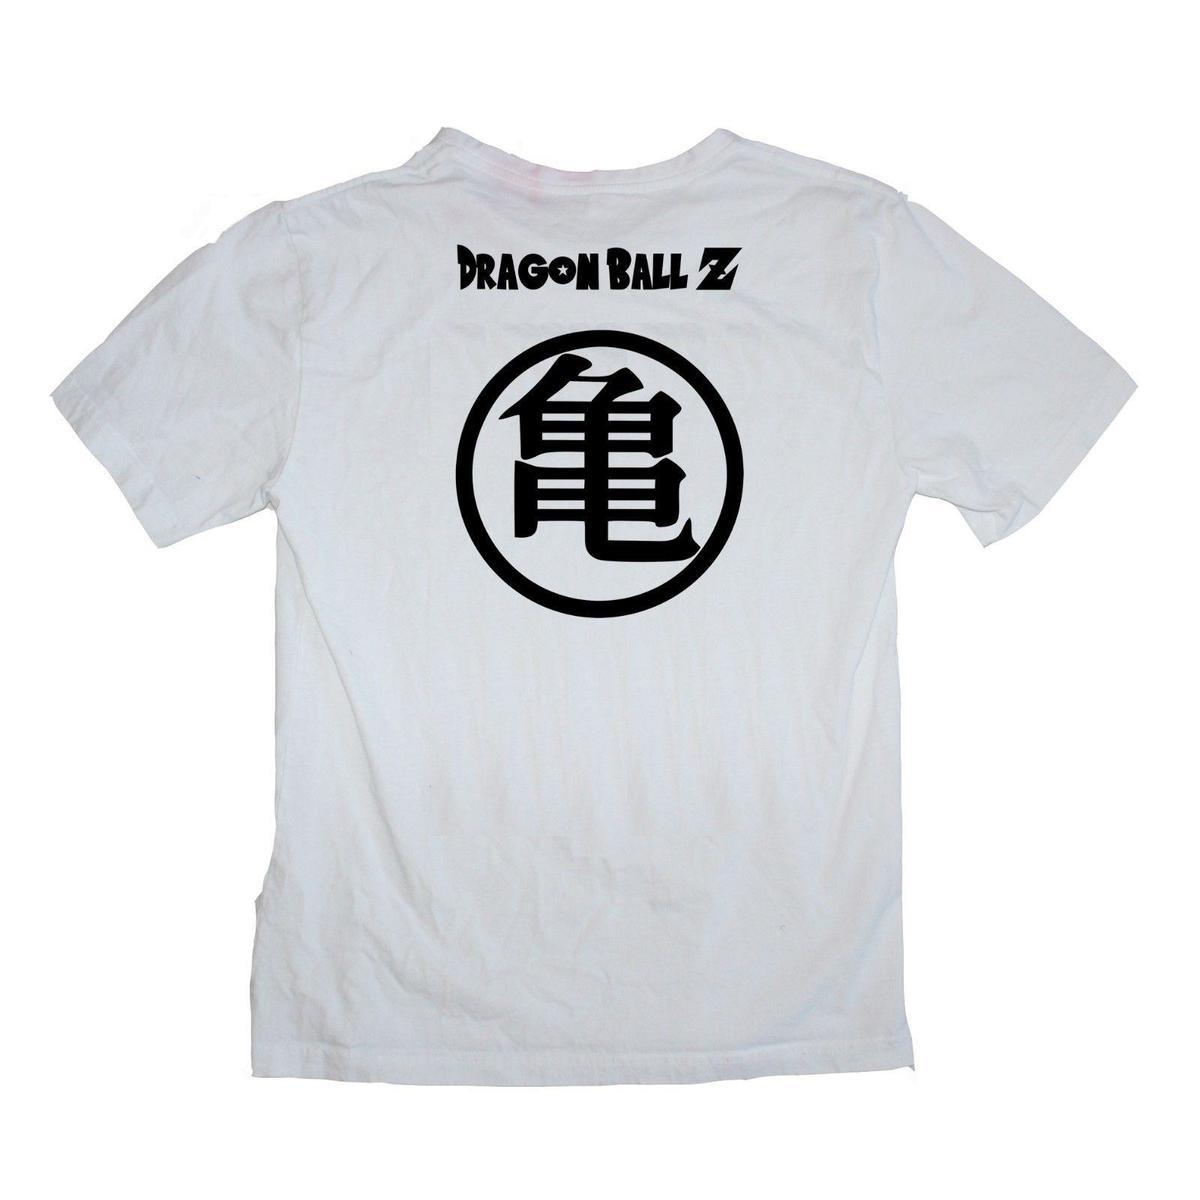 0fb17688cf1 Dragon Ball Z Shirt Sizes S XL Various Colours Awesome T Shirts For Guys  Cool Tee Shirt Designs From Lijian11